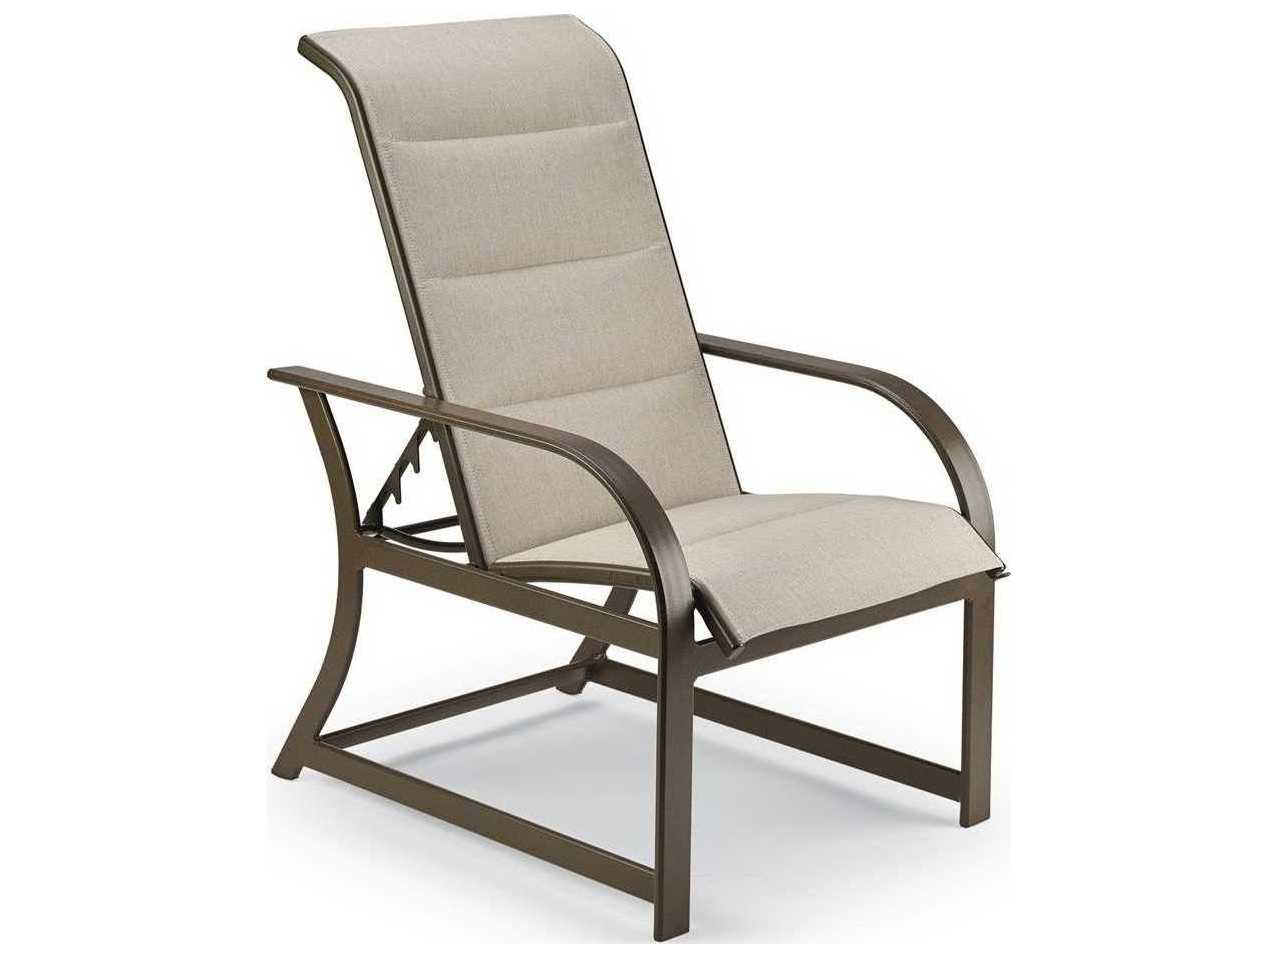 sling motion patio chairs ikea futon chair bed winston key west padded aluminum adjustable